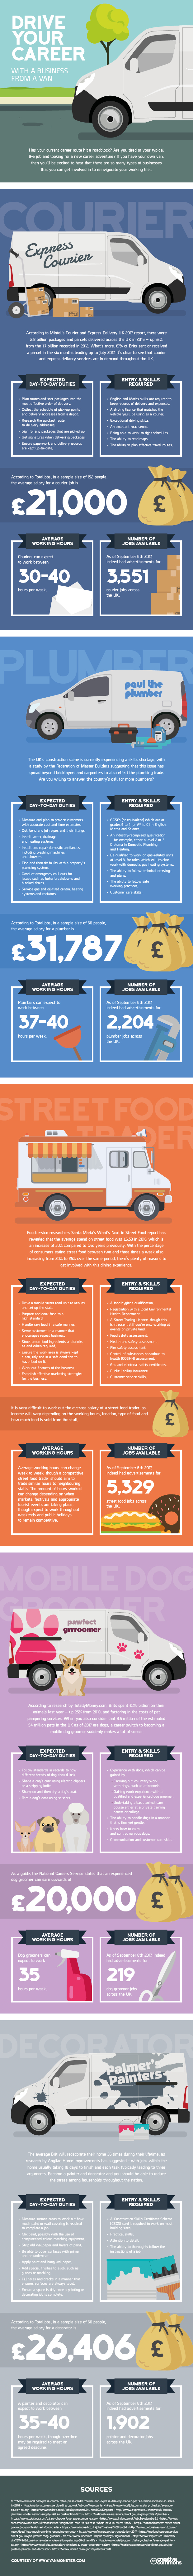 Drive your career with your own van business v4